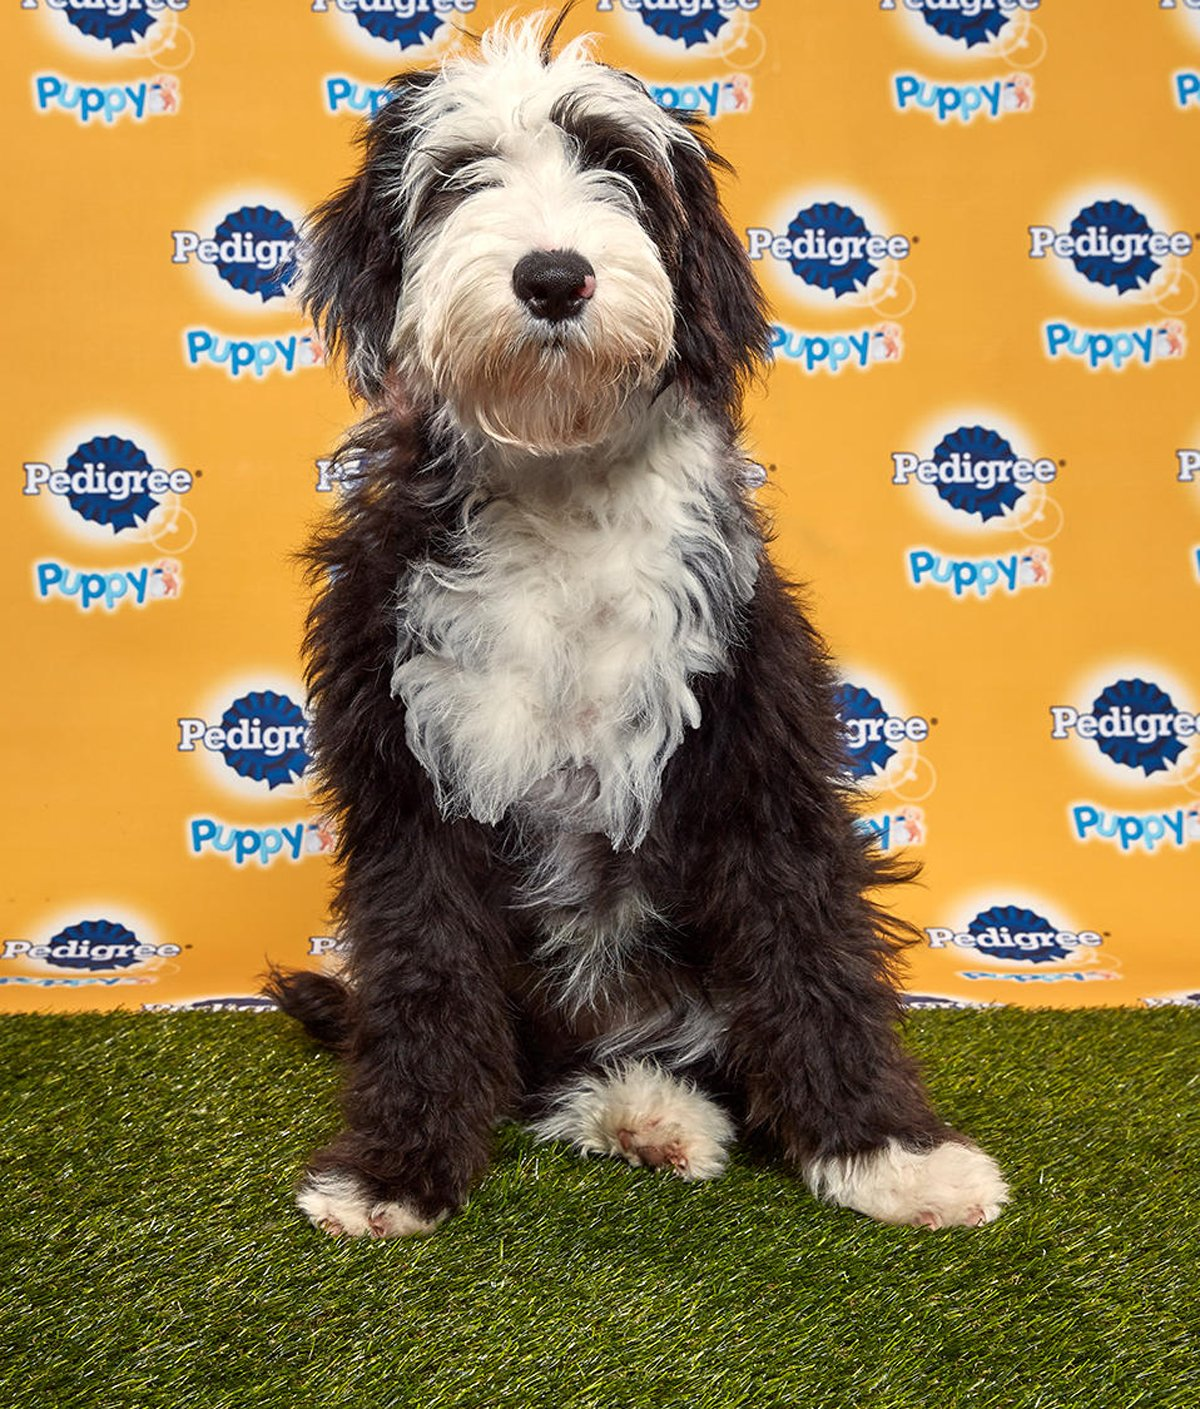 Candy Puppy Bowl 2020 Puppy Bowl XVI Animal Planet photo